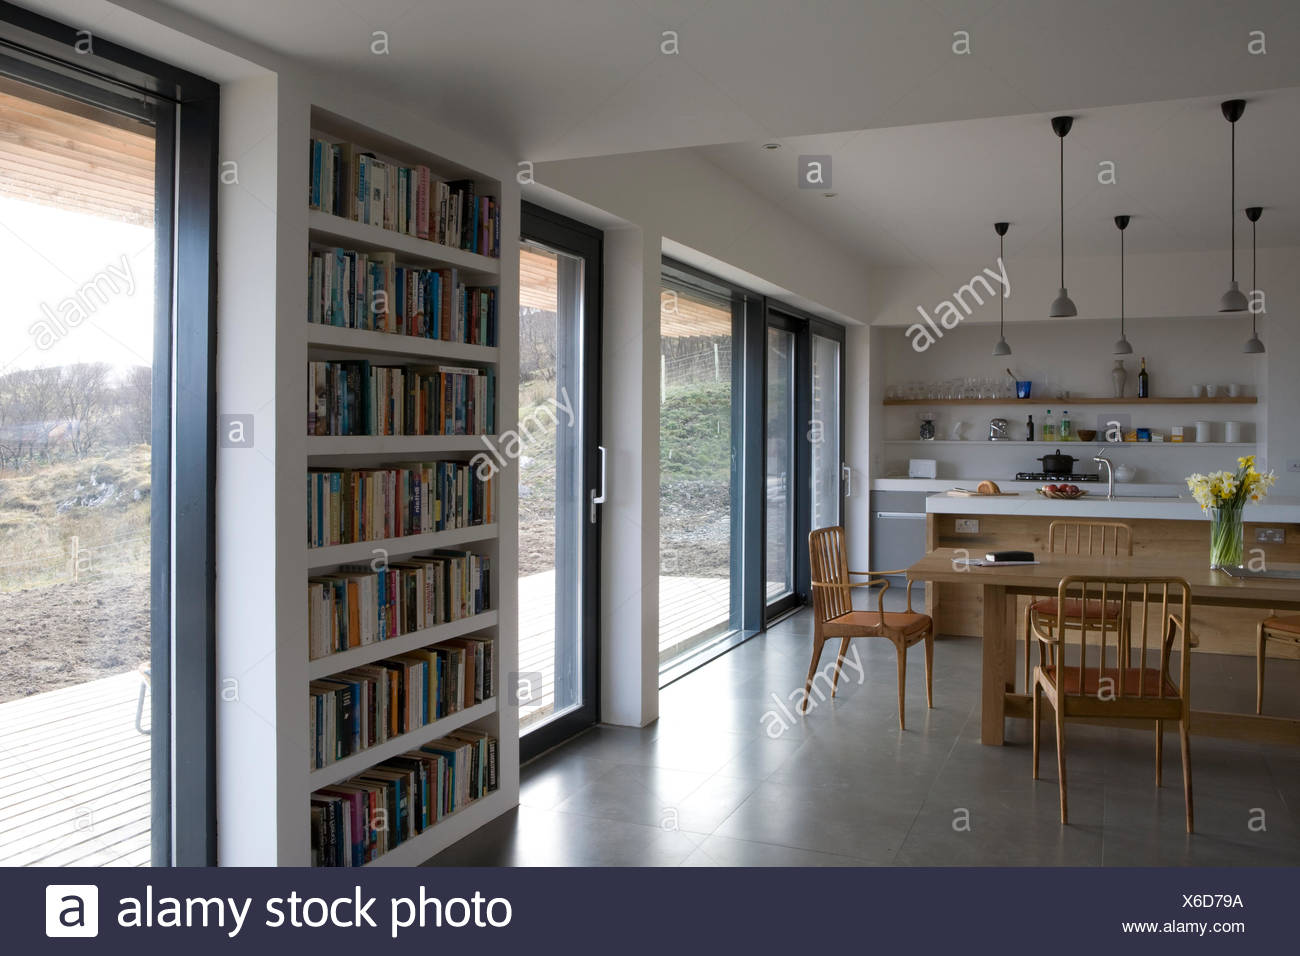 Wall Shelves Between Glass Doors In Modern Open Plant Kitchen With